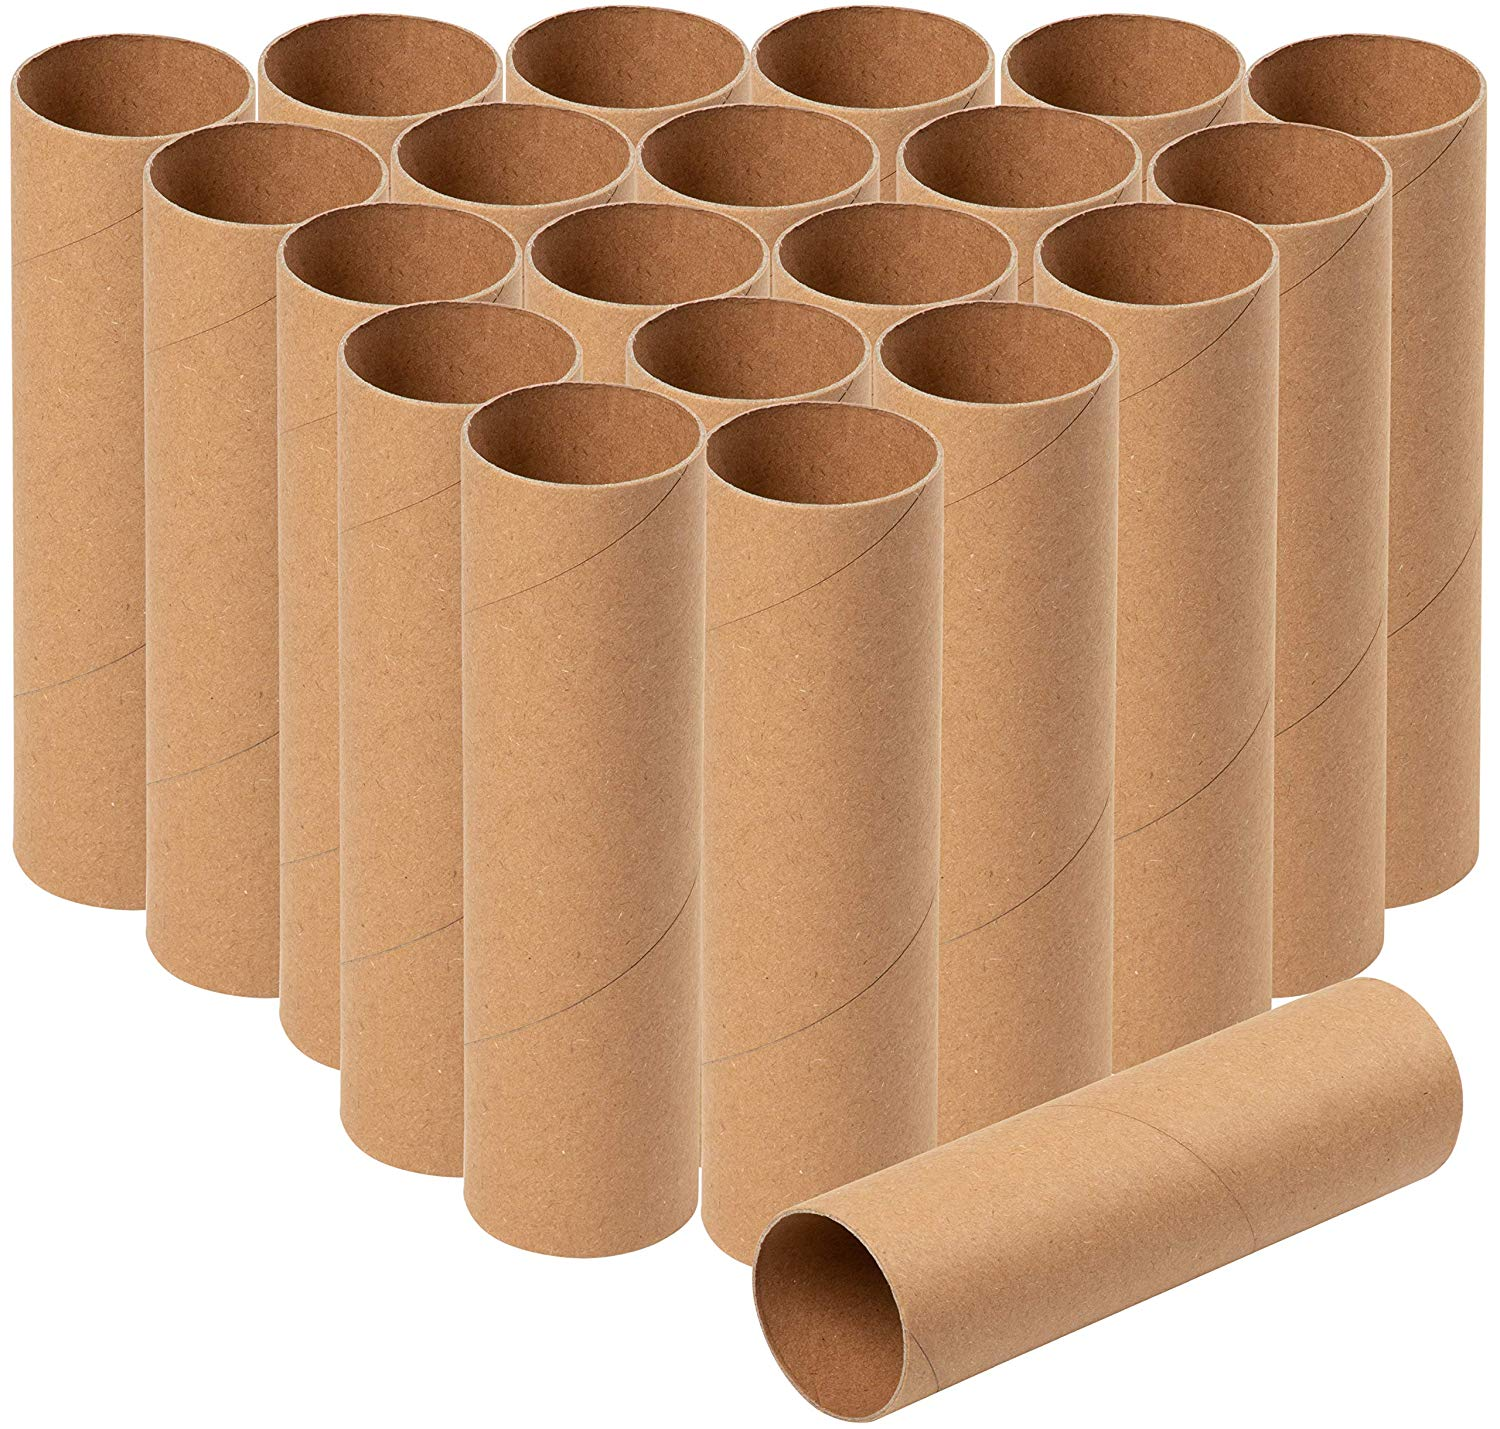 Buy Cardboard Tubes For Your Business Without Investing Too Much Cash From Your Budget